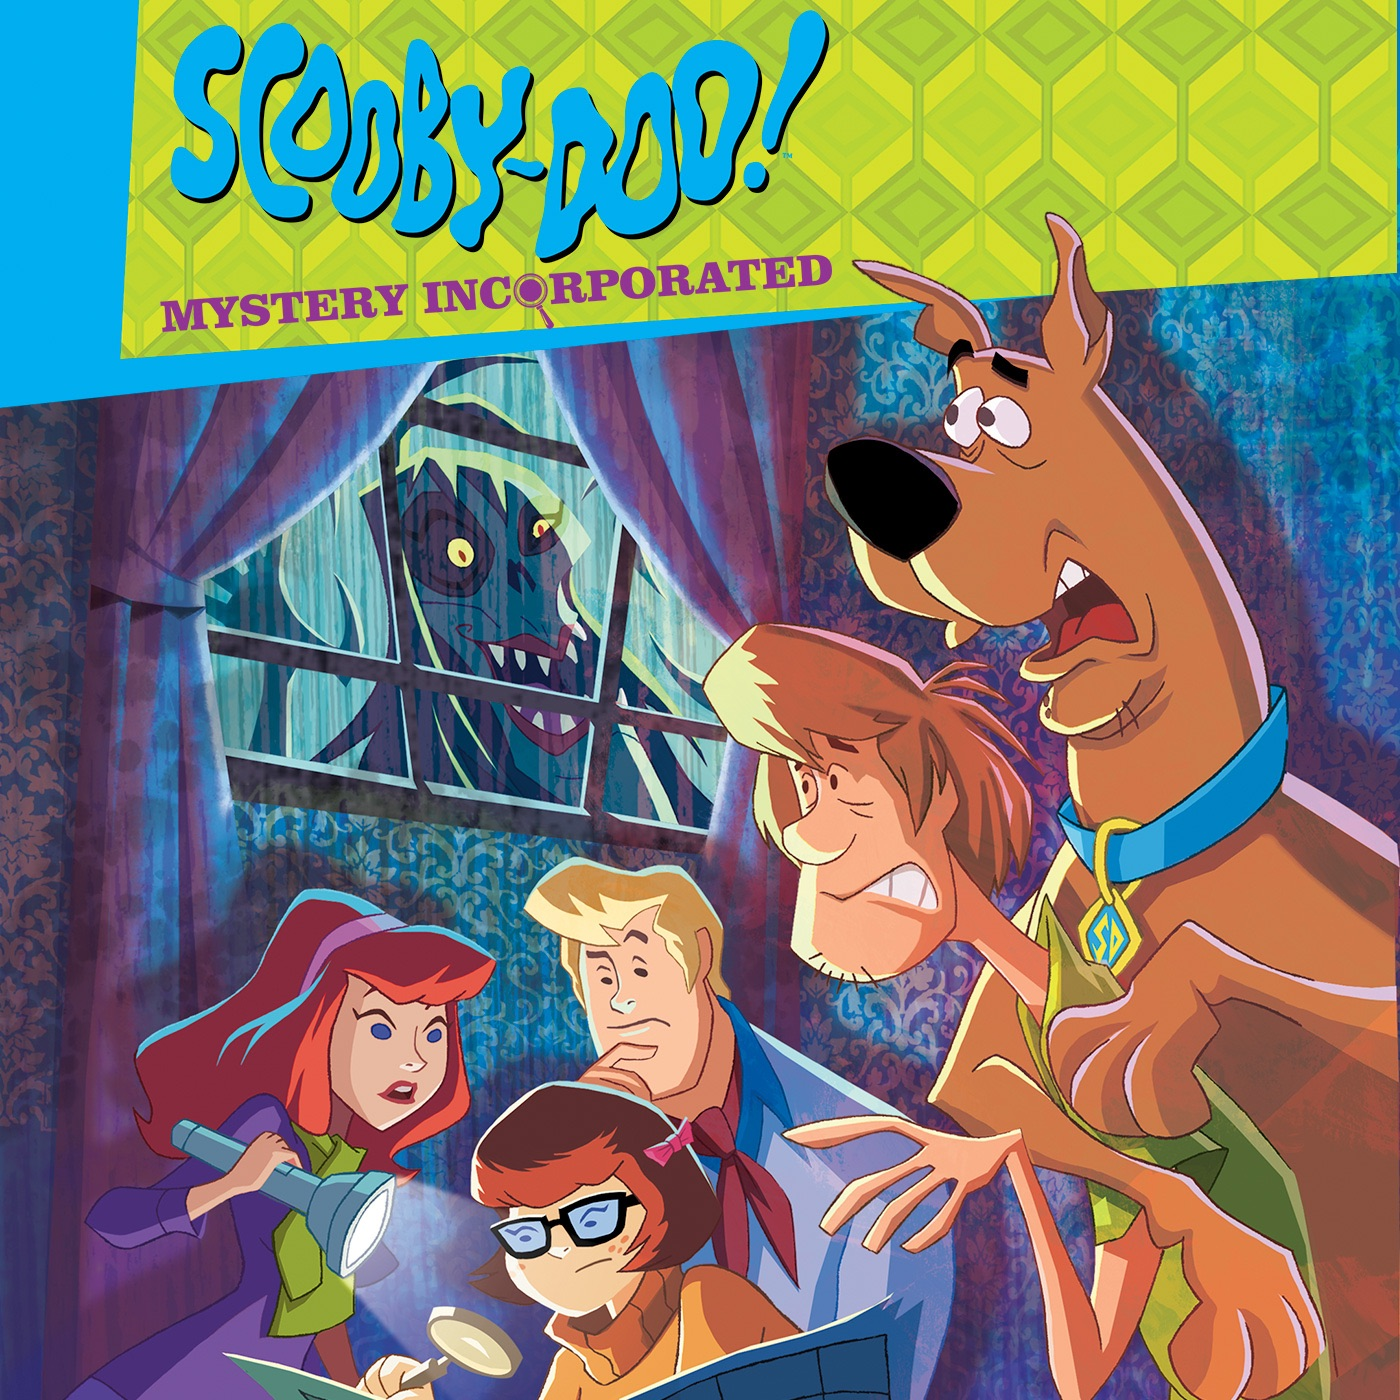 Scooby-Doo! Mystery Incorporated, Season 1, Vol. 2 On ITunes